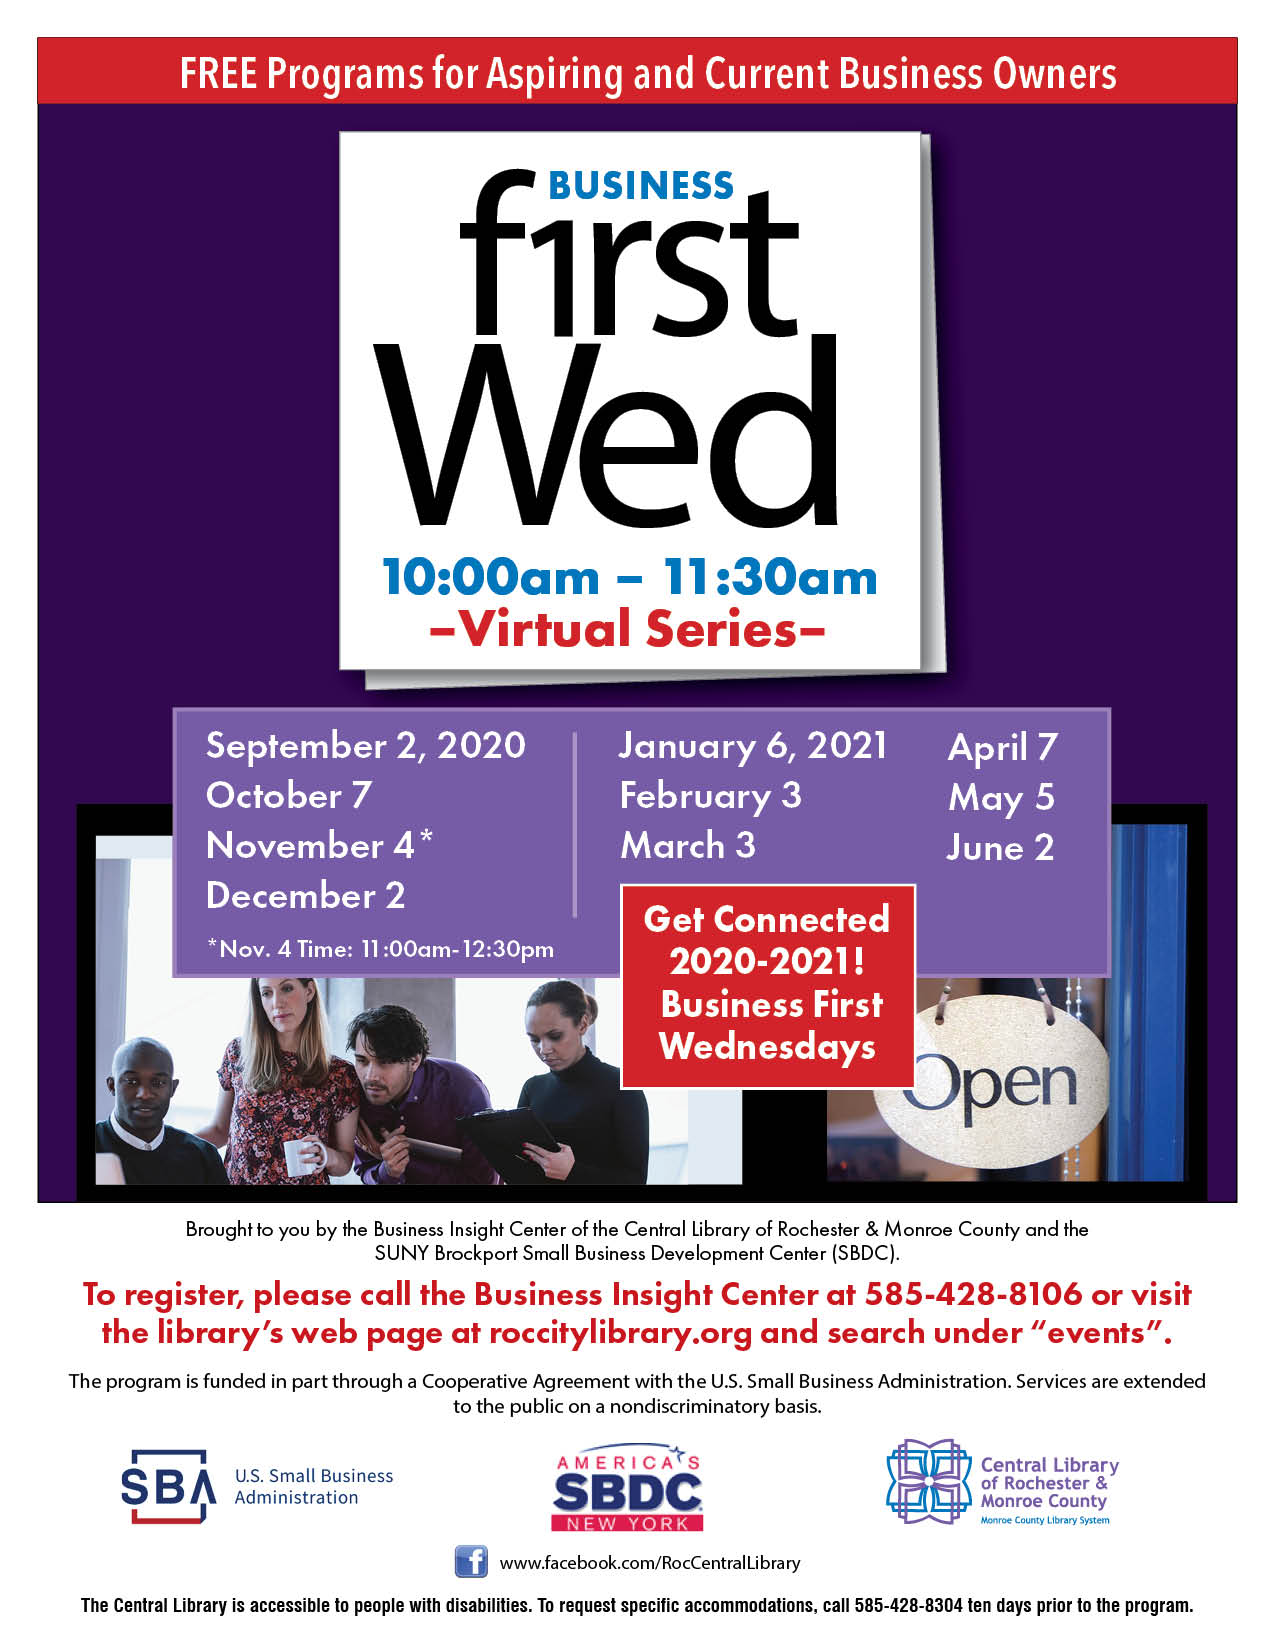 Business First Wednesday - Paycheck Protection Program and EIDL Updates Straight from the SBA